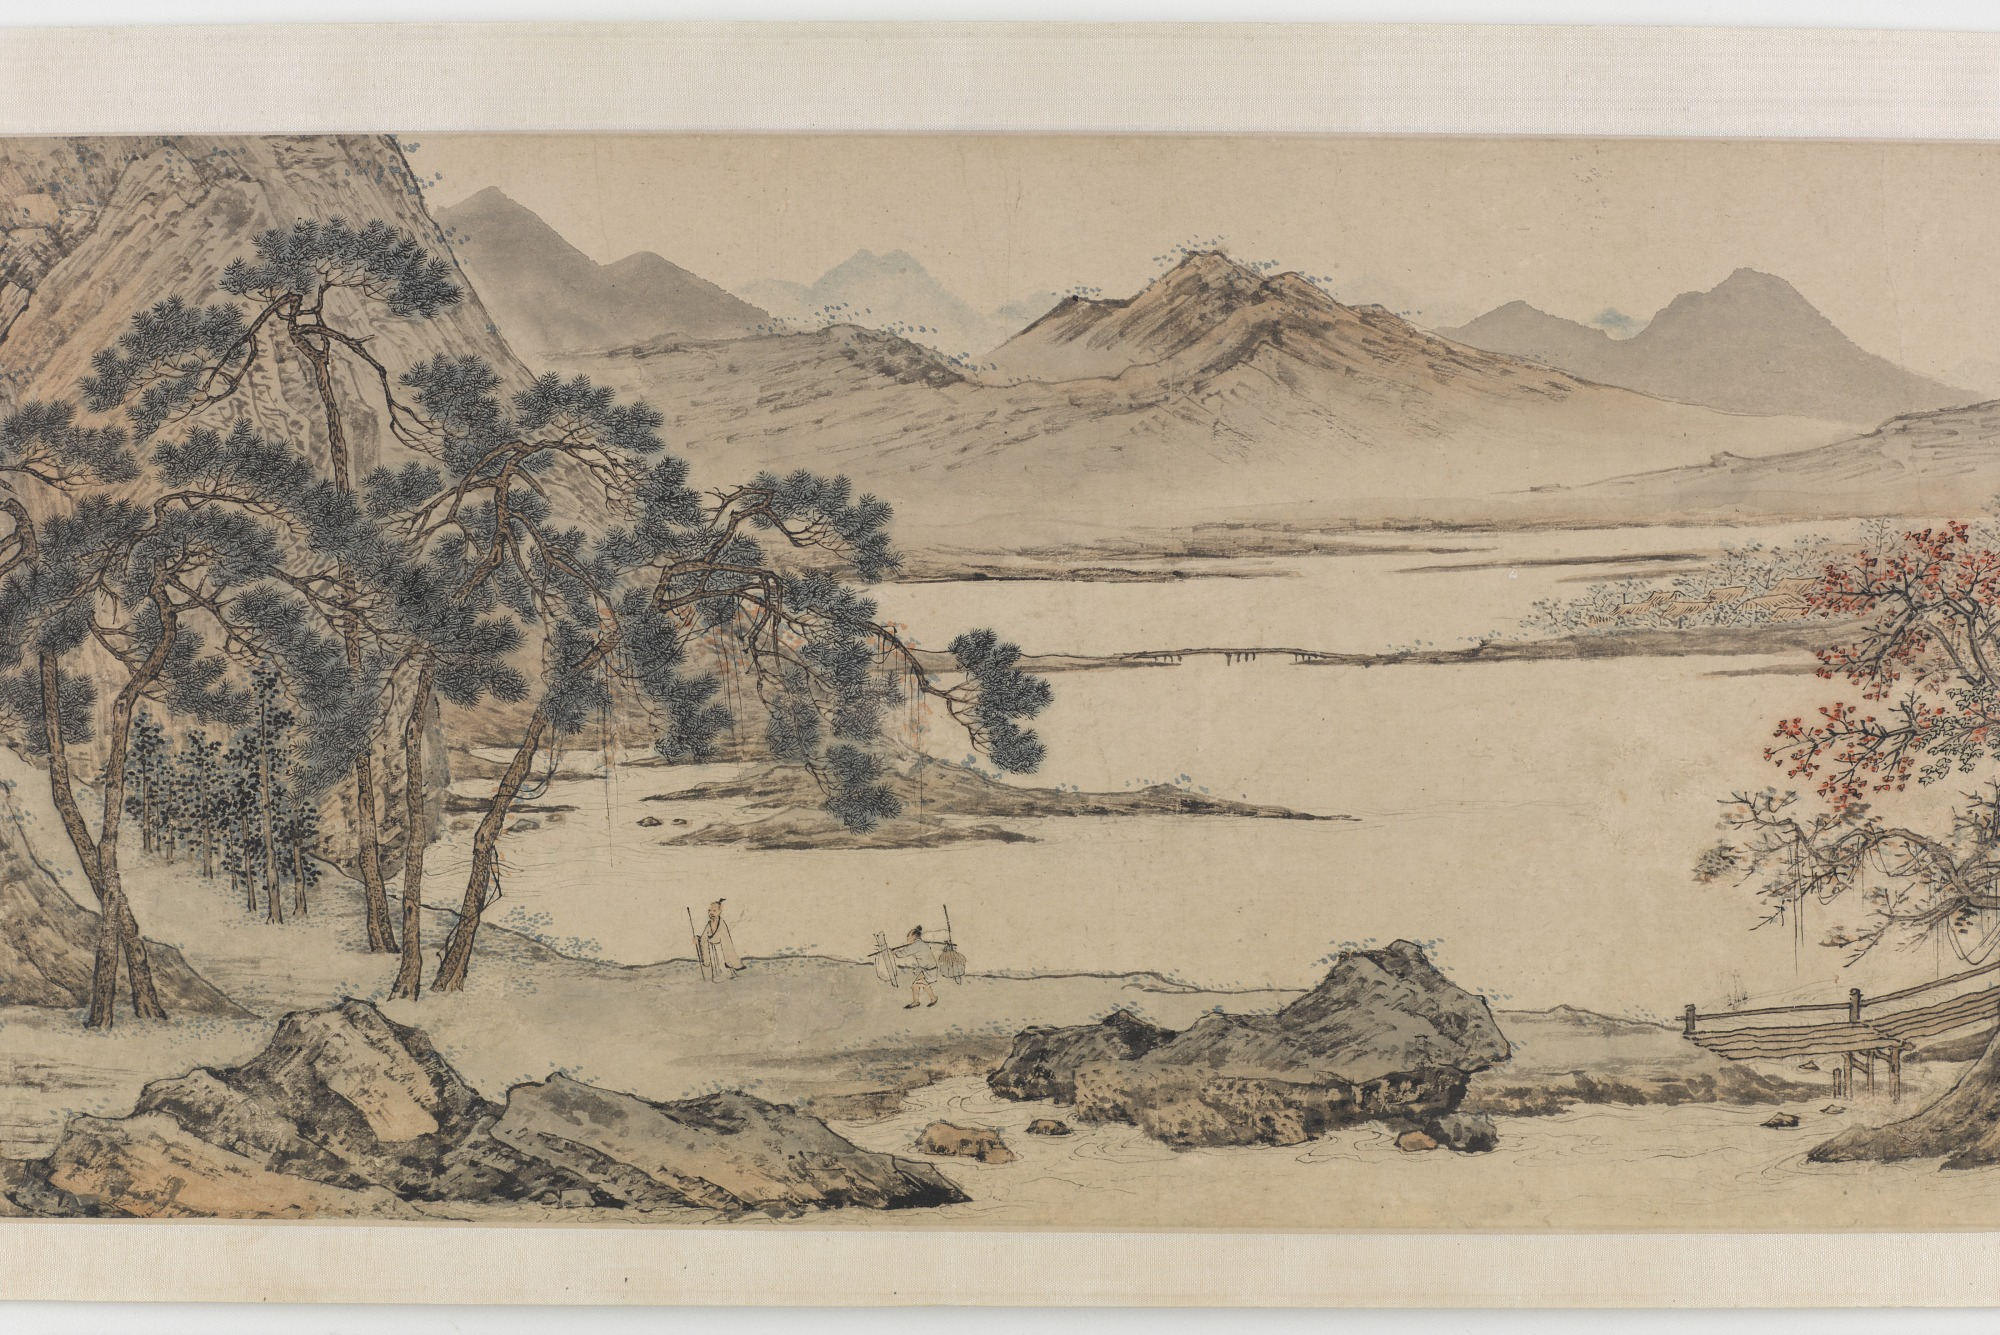 section 5: Landscape in the Style of Li Tang